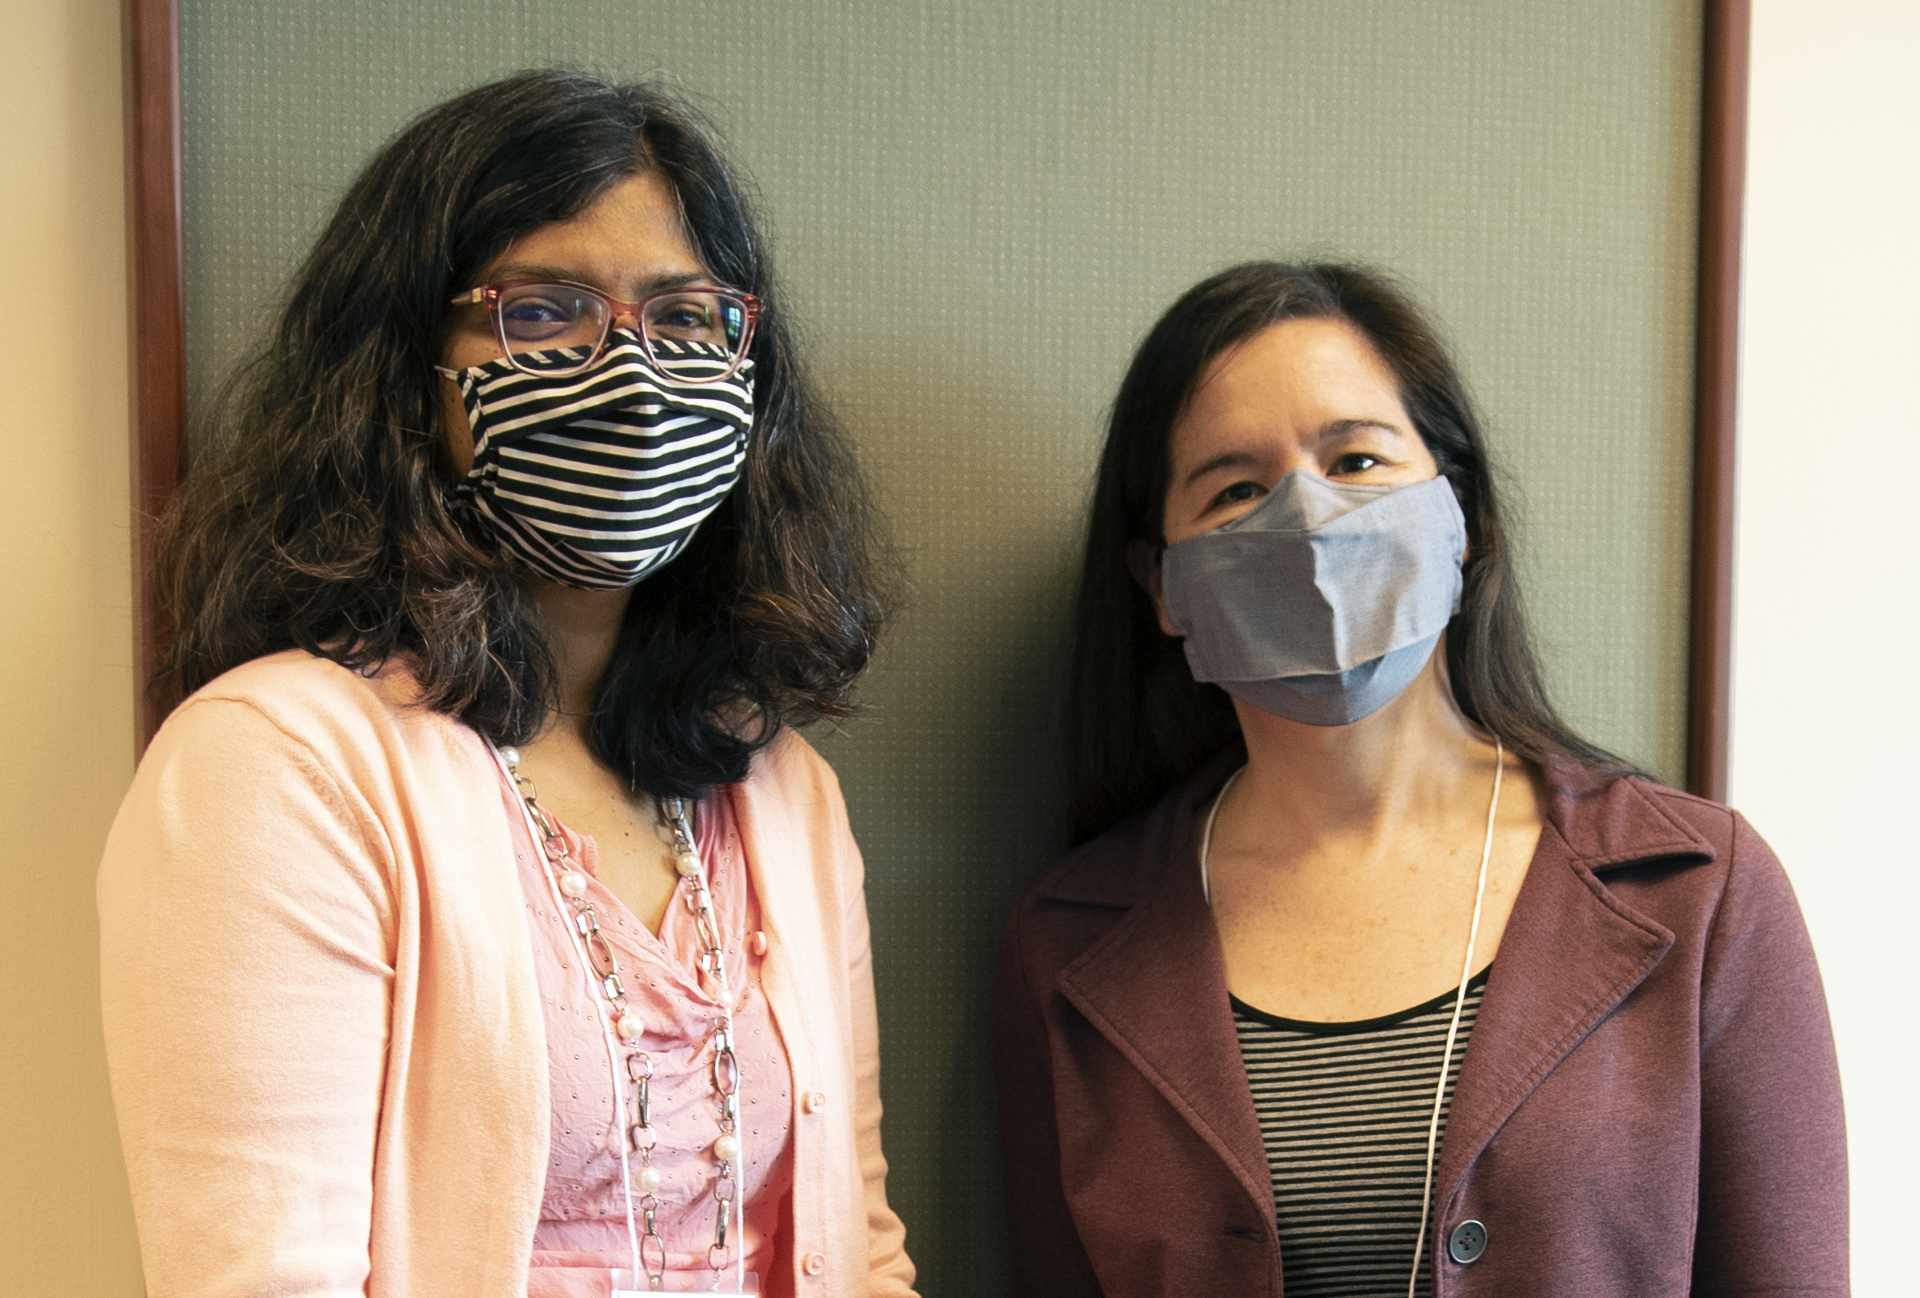 Professors Sayee Anakk and Shannon Sirk at the Cancer and Microbes Workshop